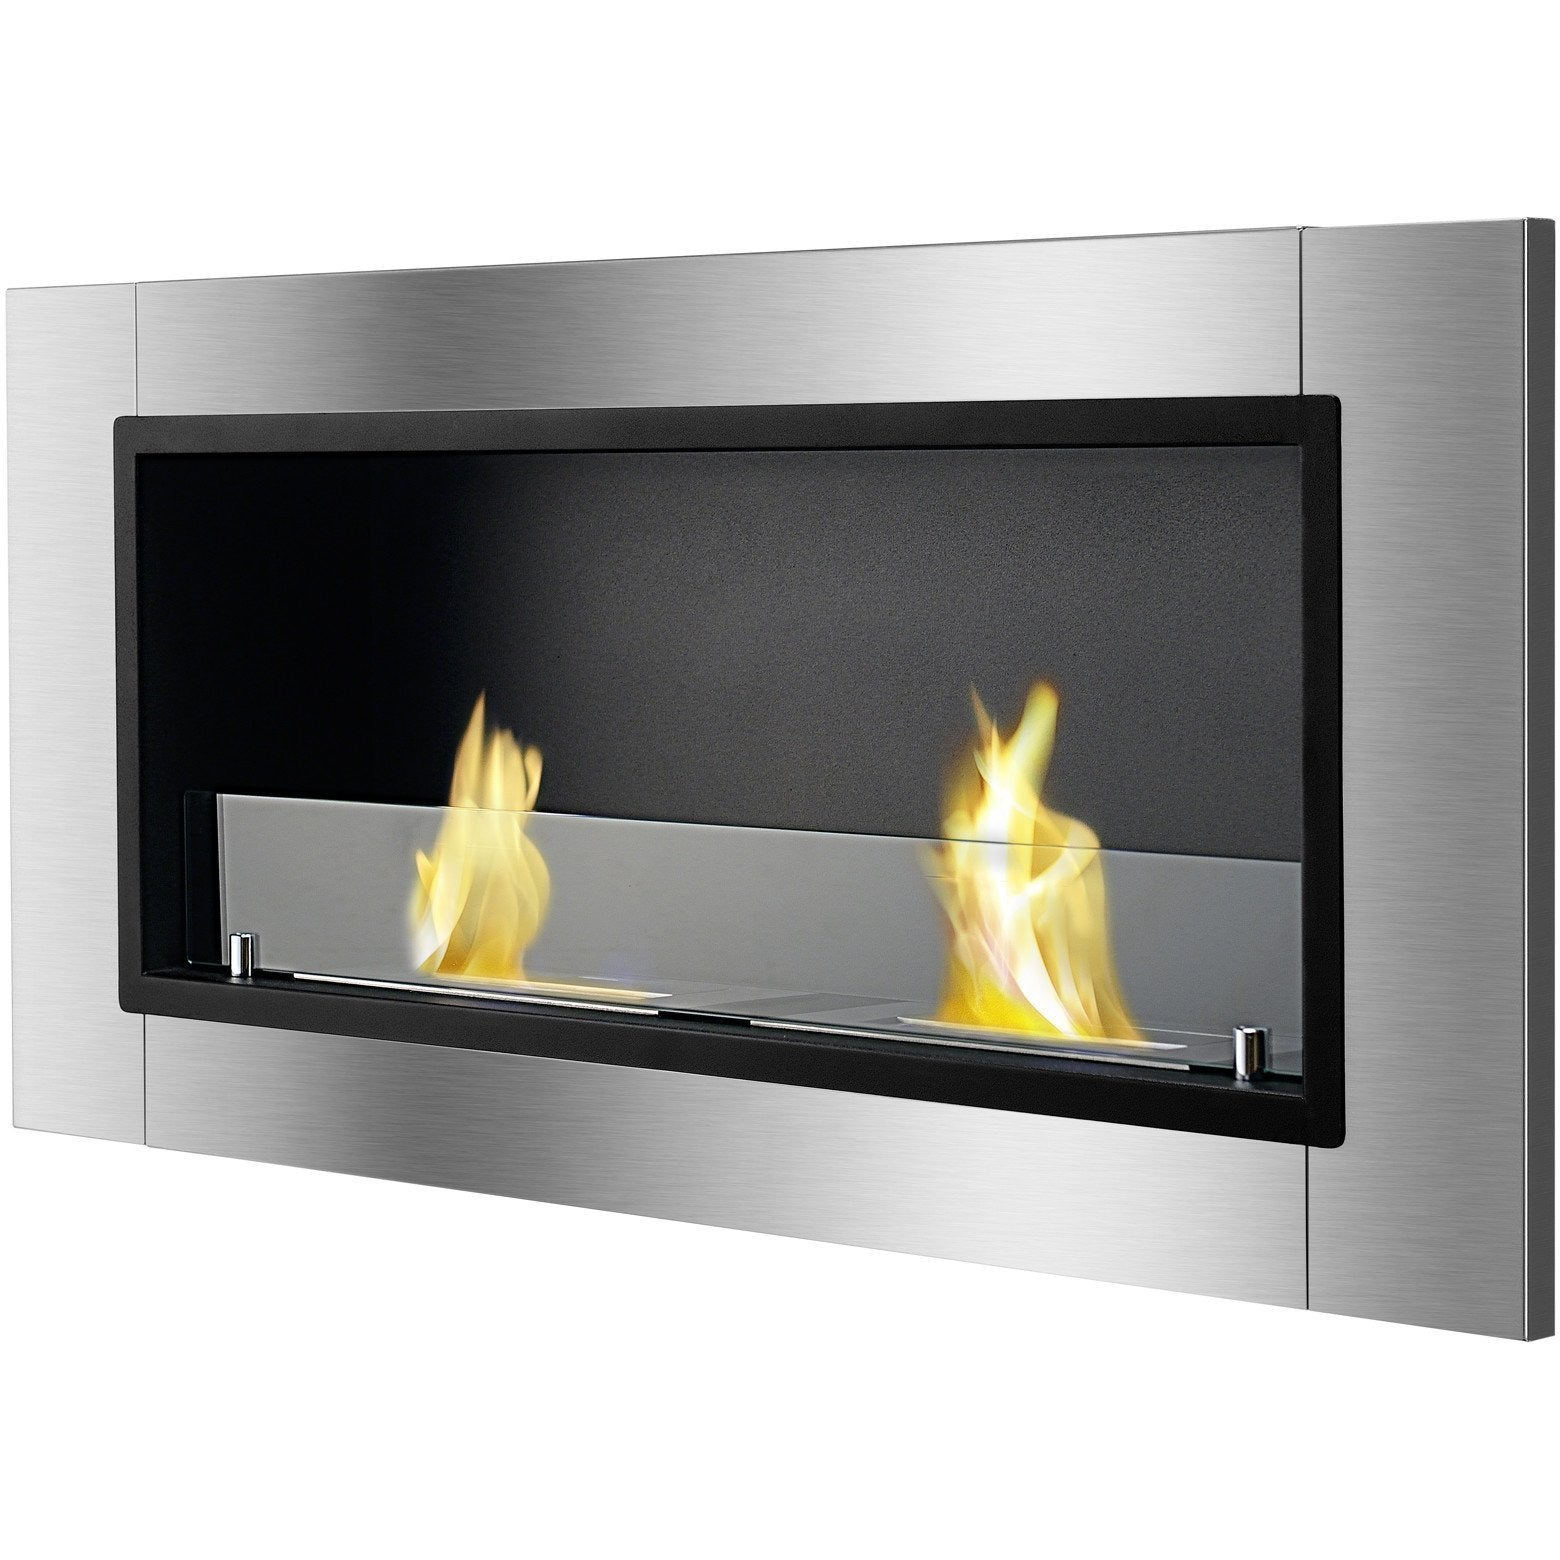 Ethanol Fireplace - Ignis Lata - Built-in/Wall Mounted Ethanol Fireplace (WMF-022)